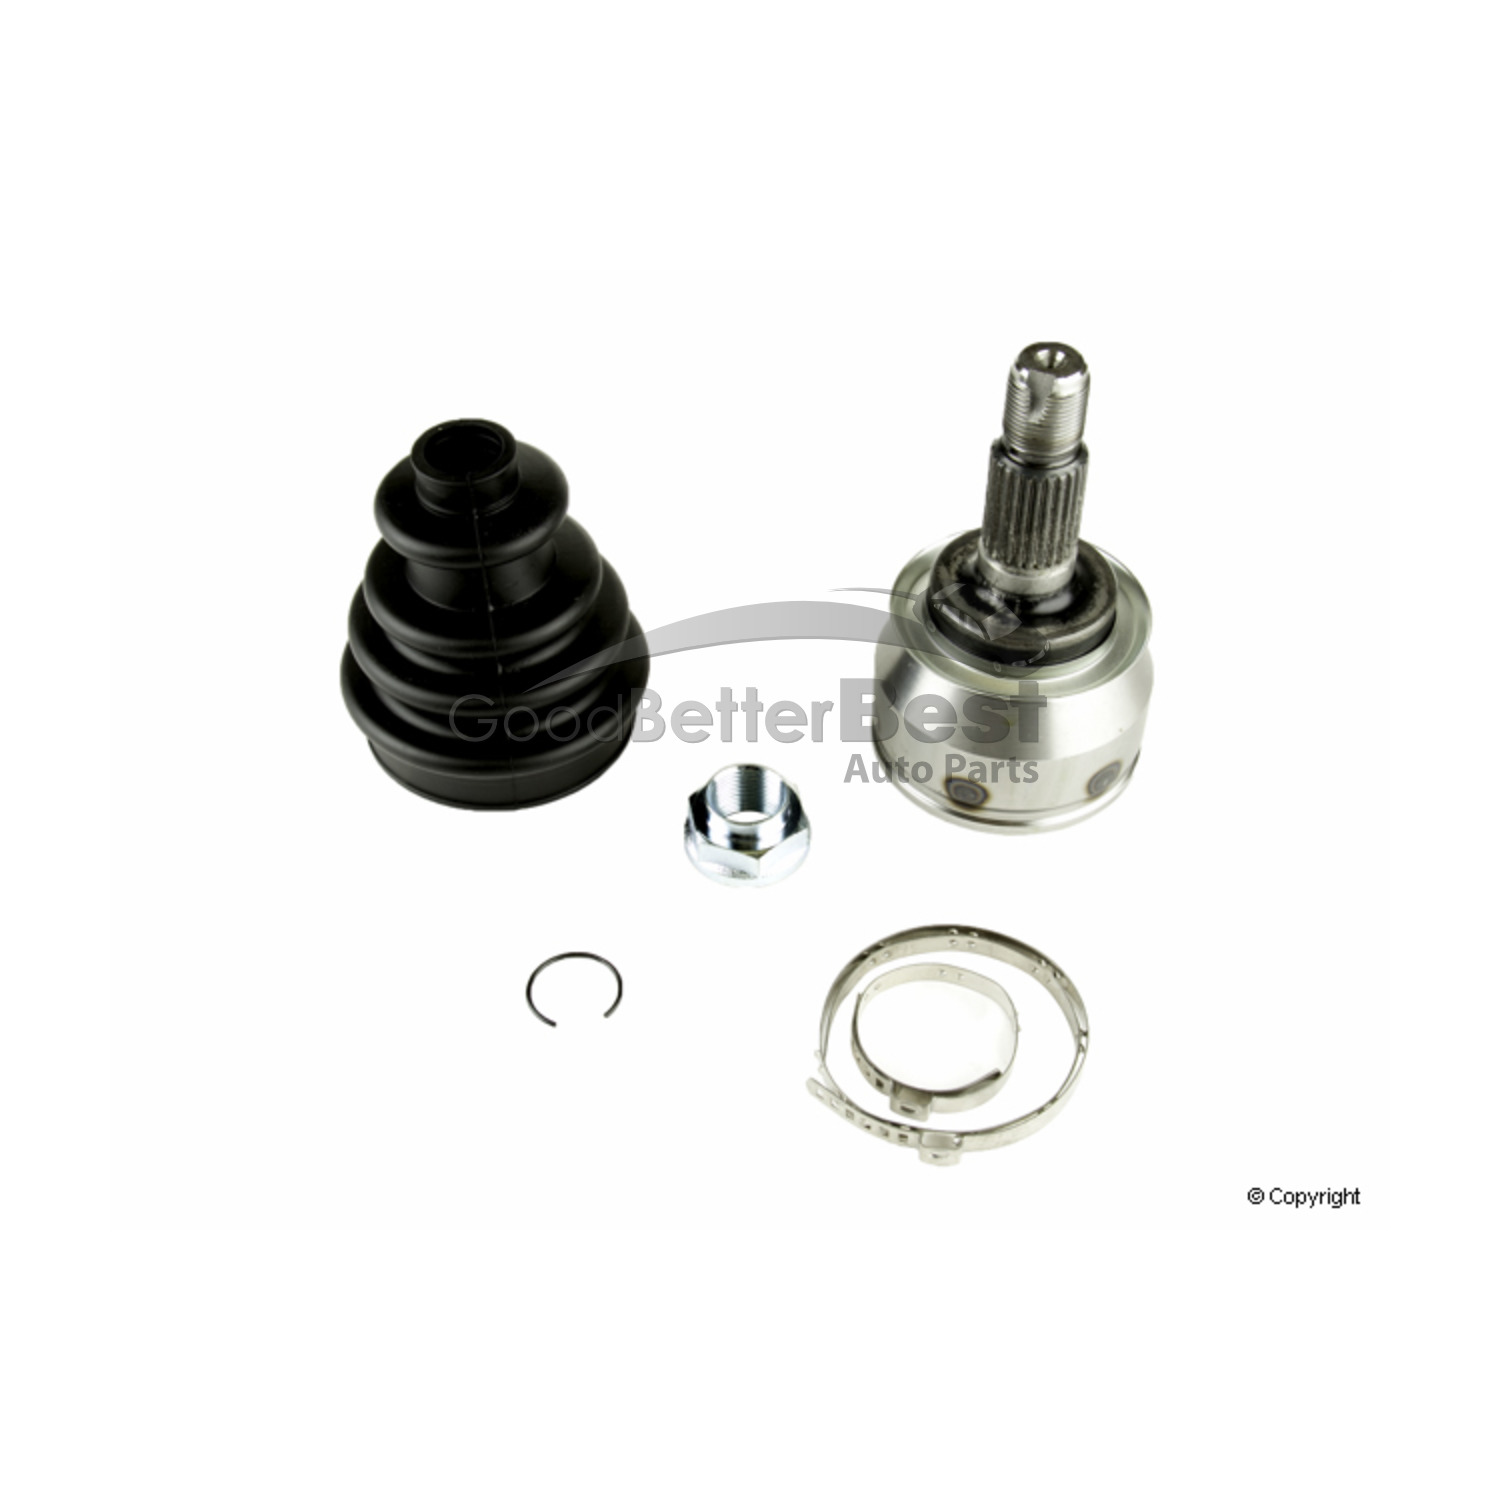 New Meyle Drive Shaft Cv Joint Kit For Mini